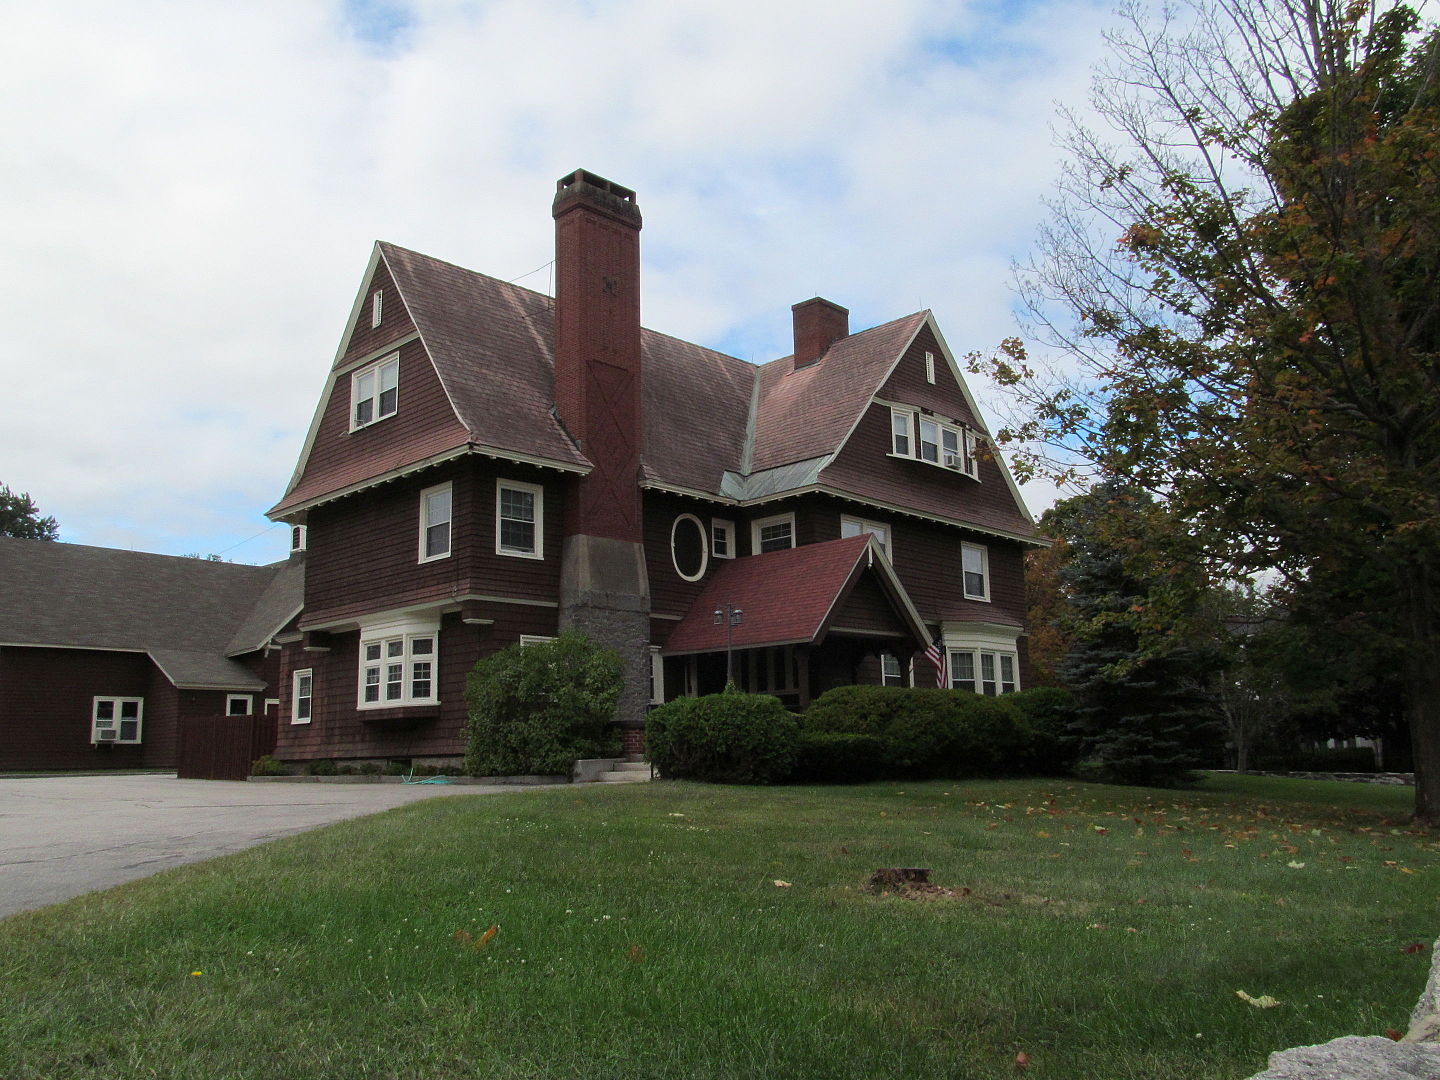 Governor Frank West Rollins House (Concord, New Hampshire)